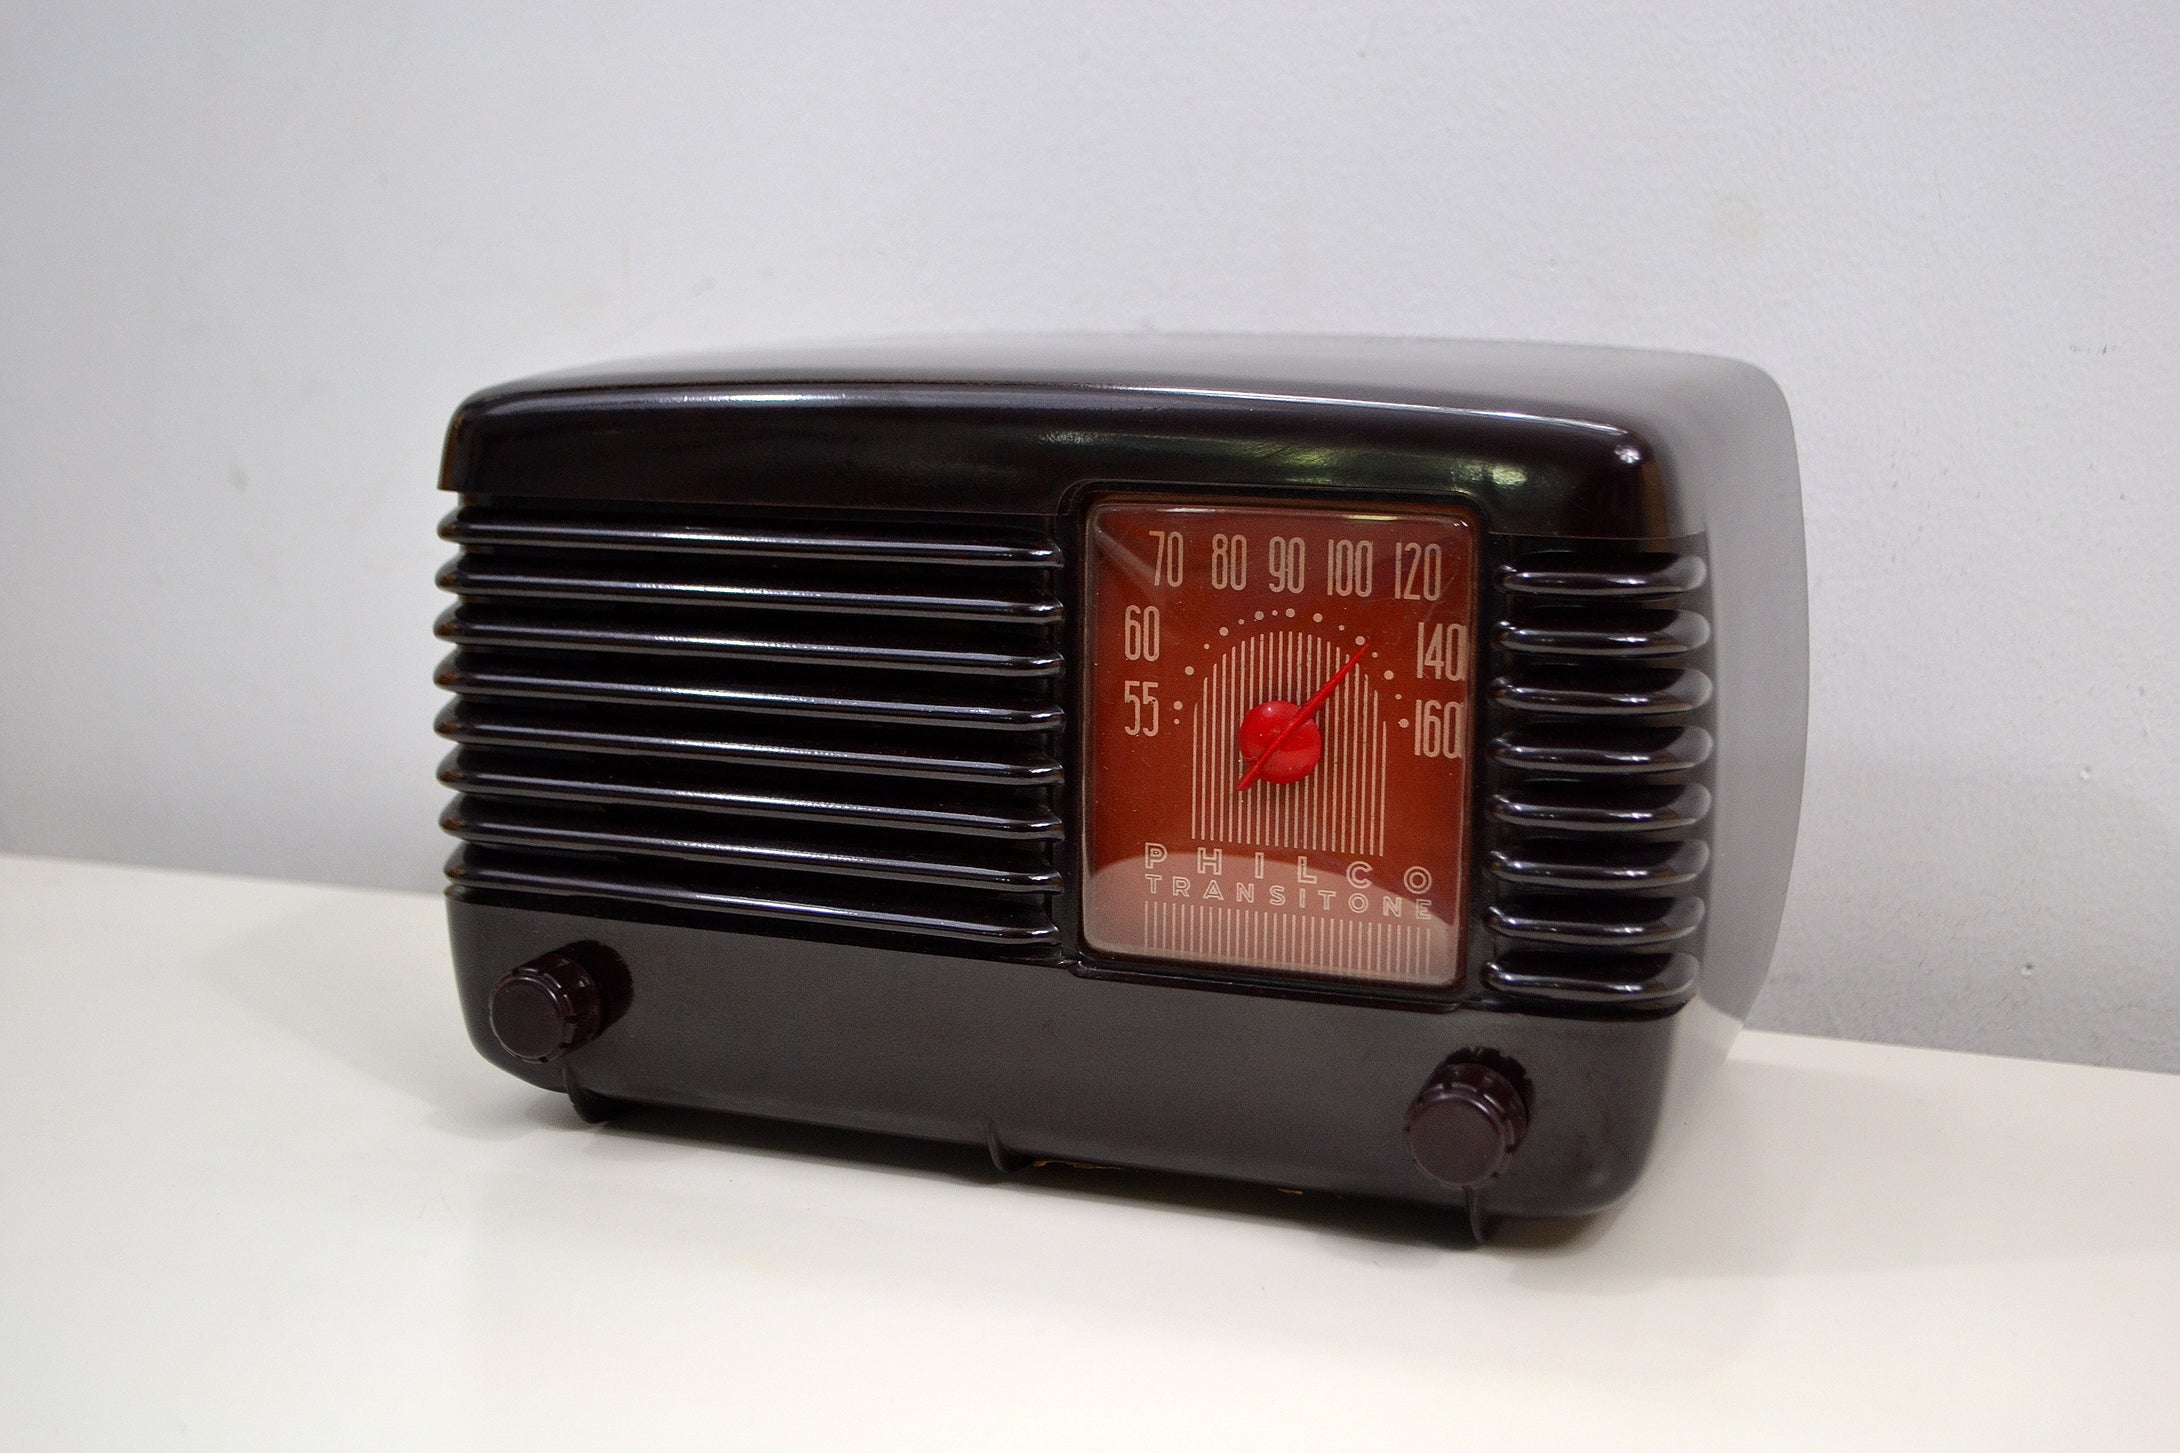 SOLD! - Oct  11, 2019 - Art Deco Brown Bakelite Vintage 1946 Philco Transitone 46-200 AM Radio Popular Design Back In Its Day! - [product_type} - Philco - Retro Radio Farm